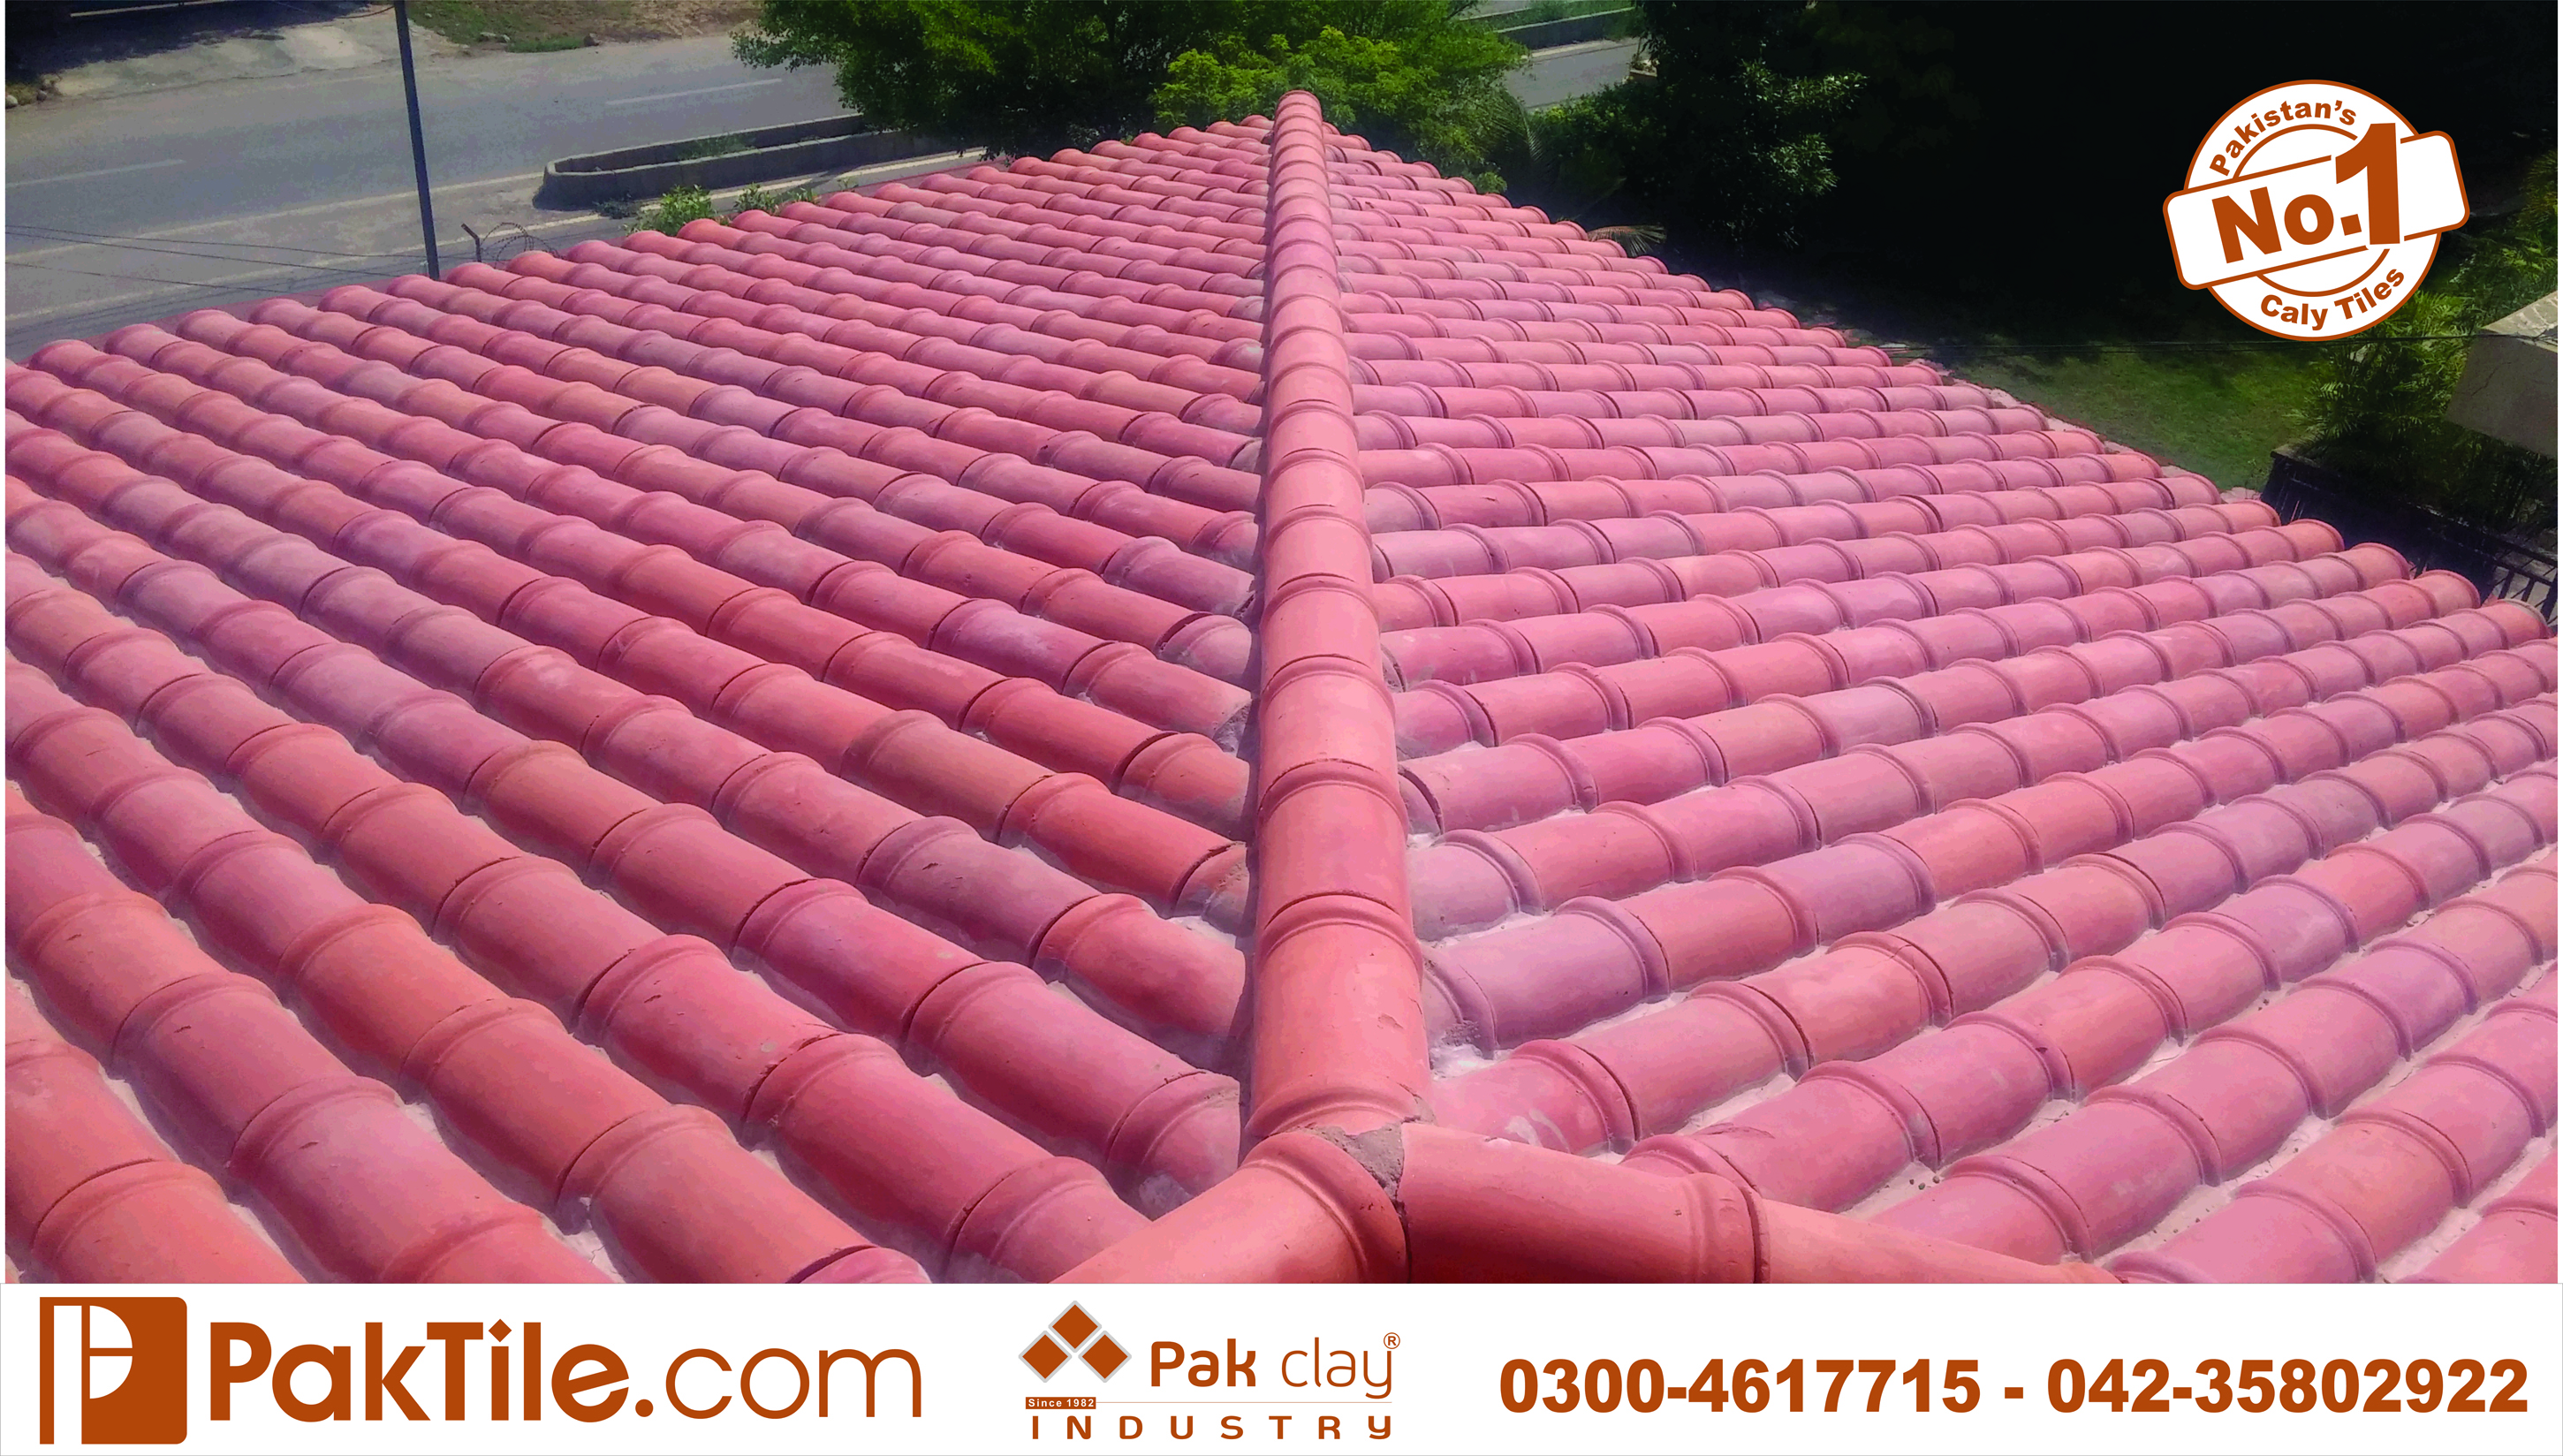 Pak clay buy online roof khaprail tiles factory outlet price rates photos in lahore islamabad multan gujranwala pakistan